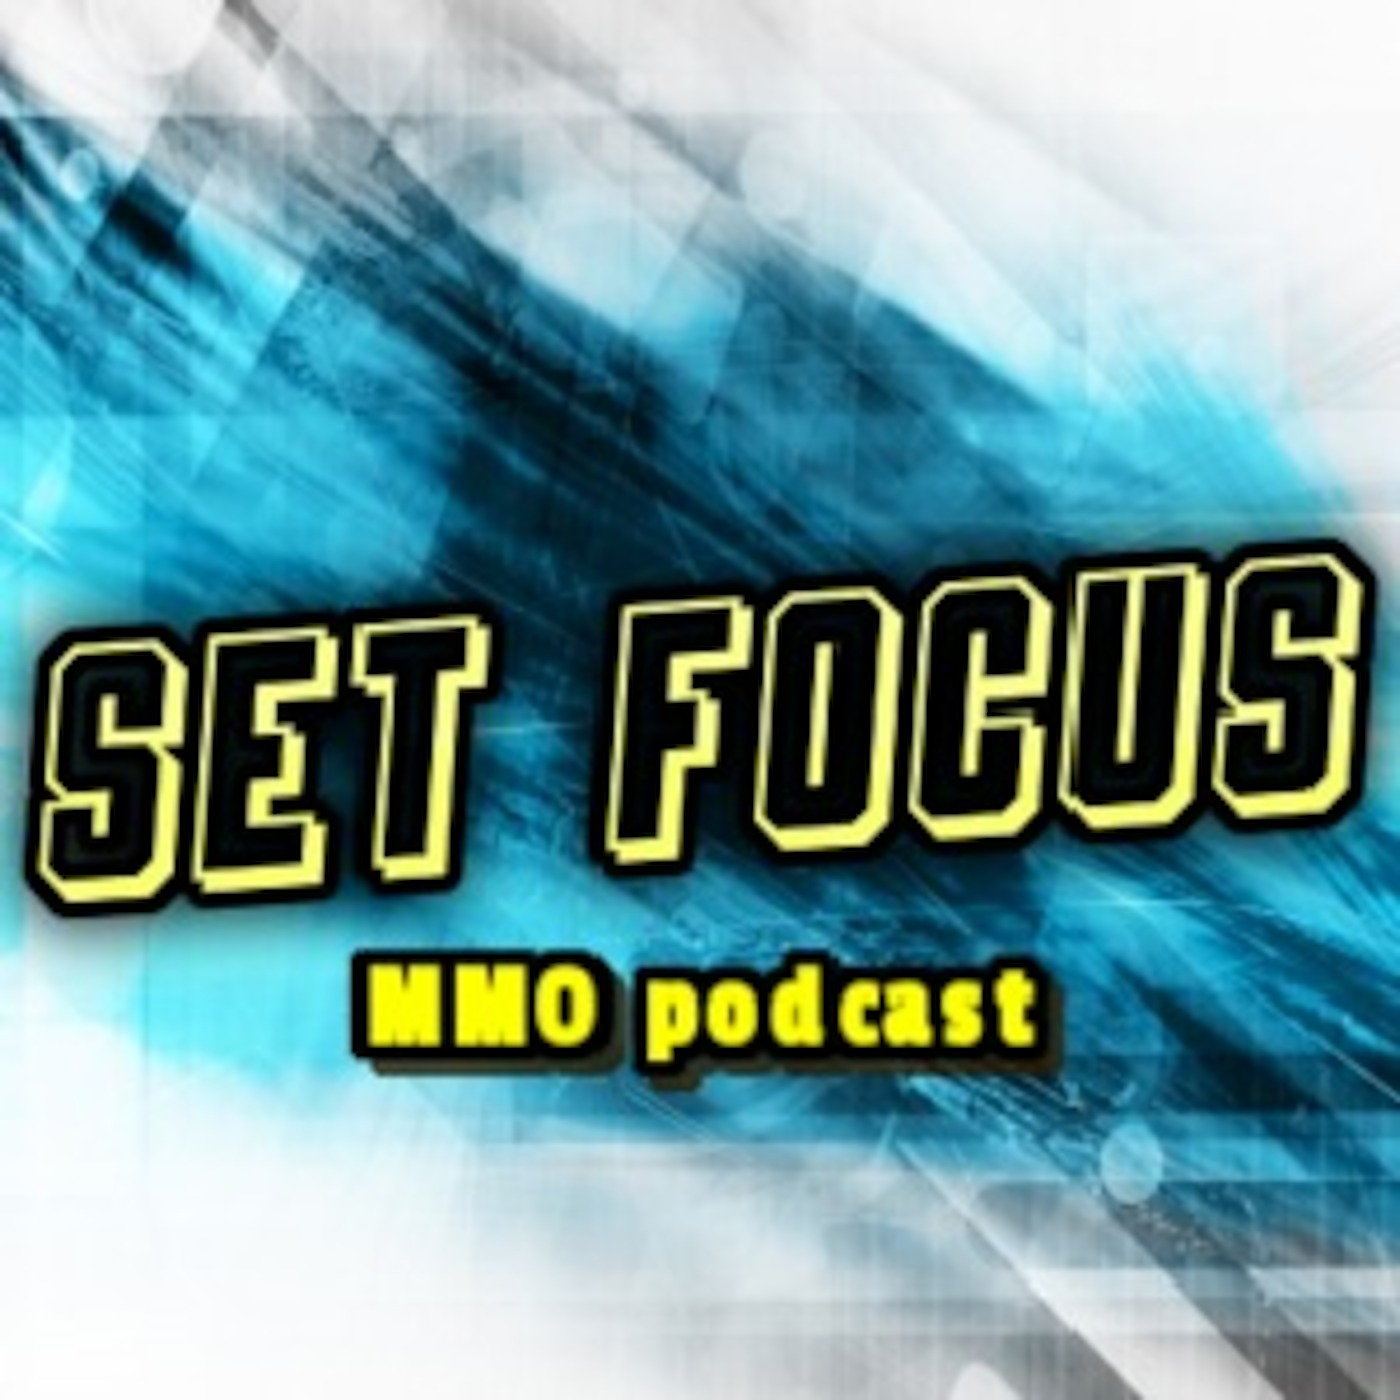 SetFocus Episode 1 (New tier sets, blighthaven events and living world season 2)